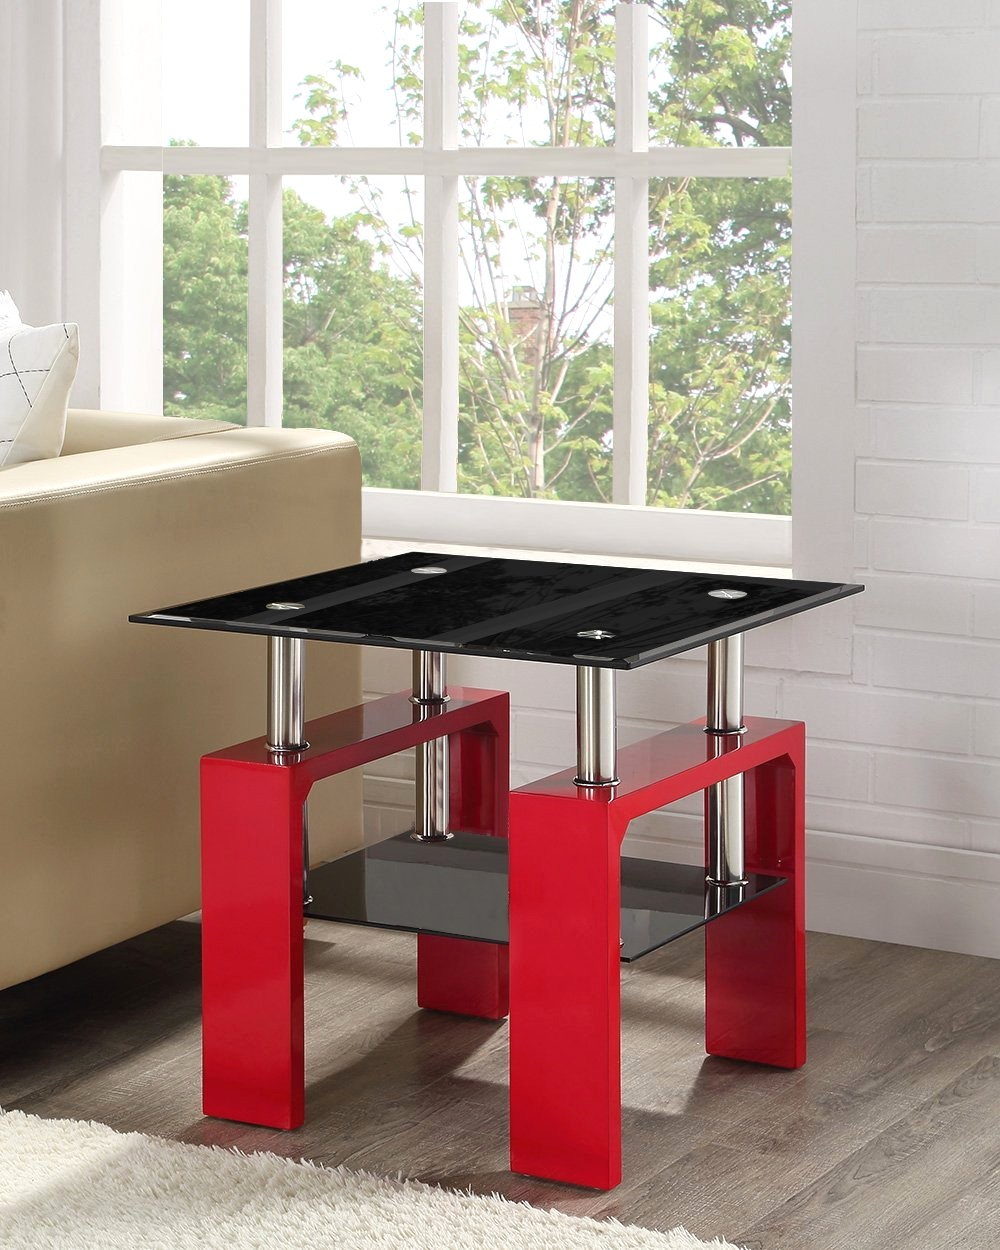 red end table home design nightstands under small accent tables bedside living room coffee and light kitchen lighting leather trunk white slim side hidden nightstand sofa chairs